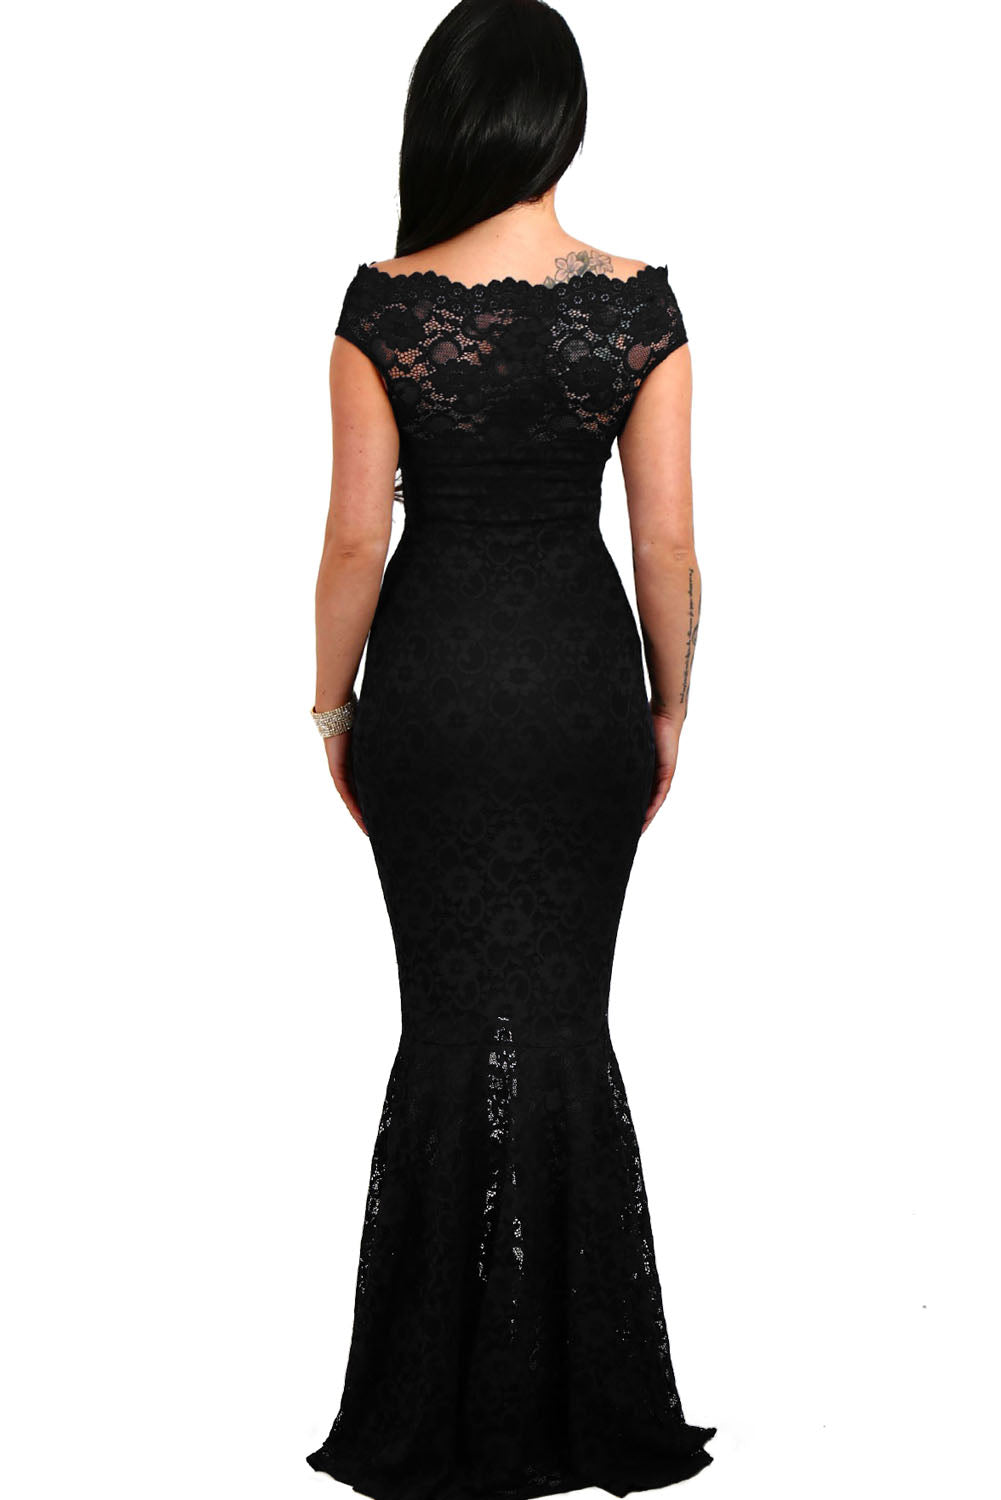 Her Fashion Gorgeous Navy Bardot Lace Fishtail Wedding Maxi Dress